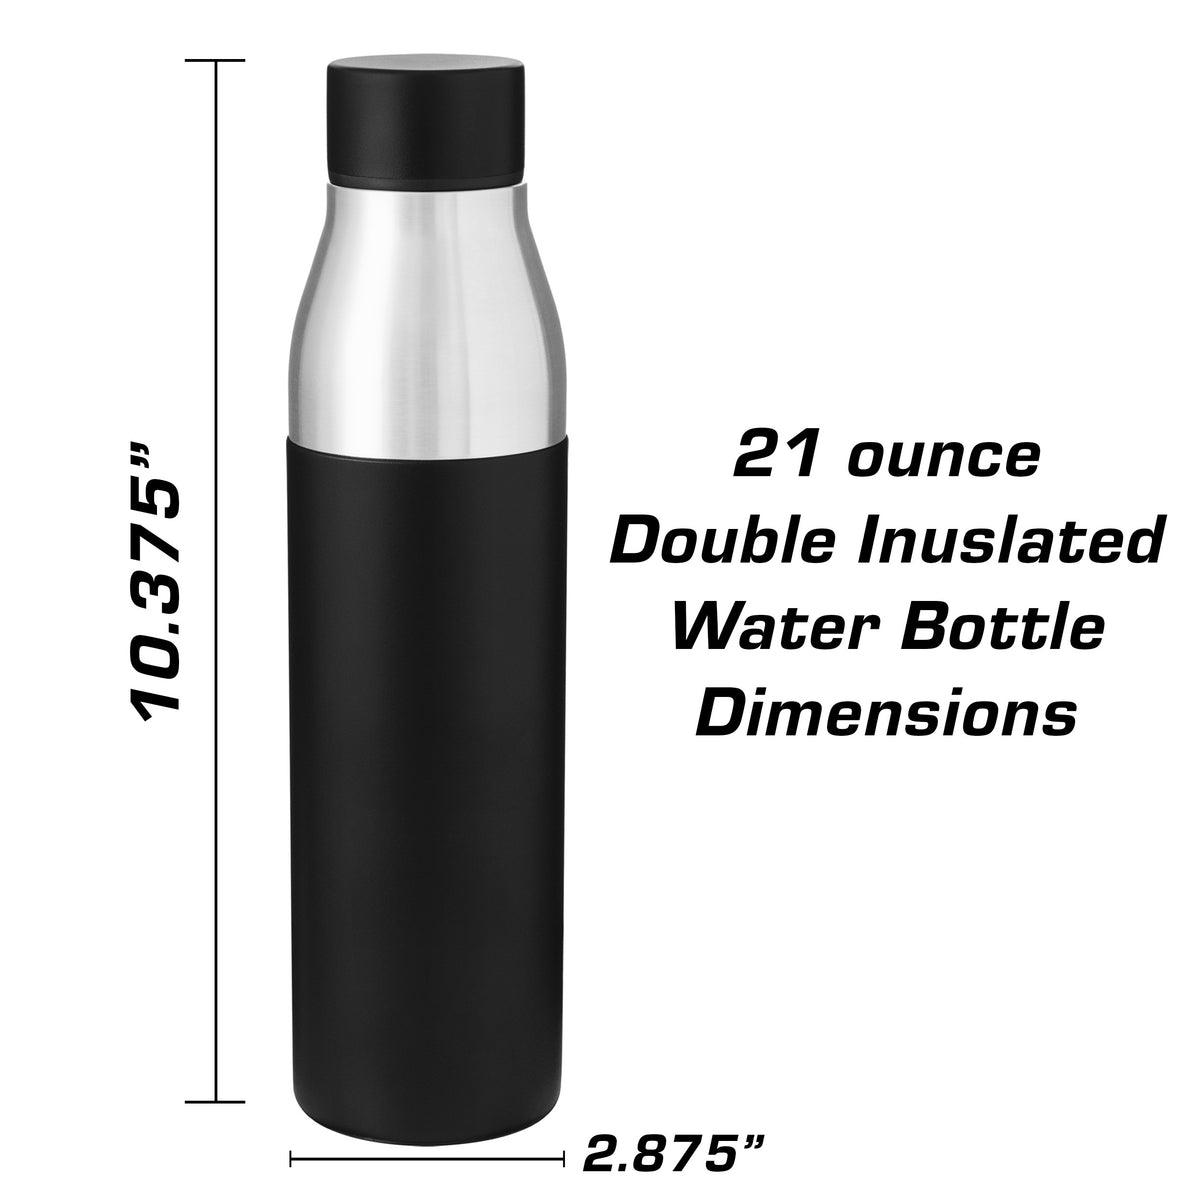 Porsche 944 Turbo Insulated Stainless Steel Water Bottle - 21 oz